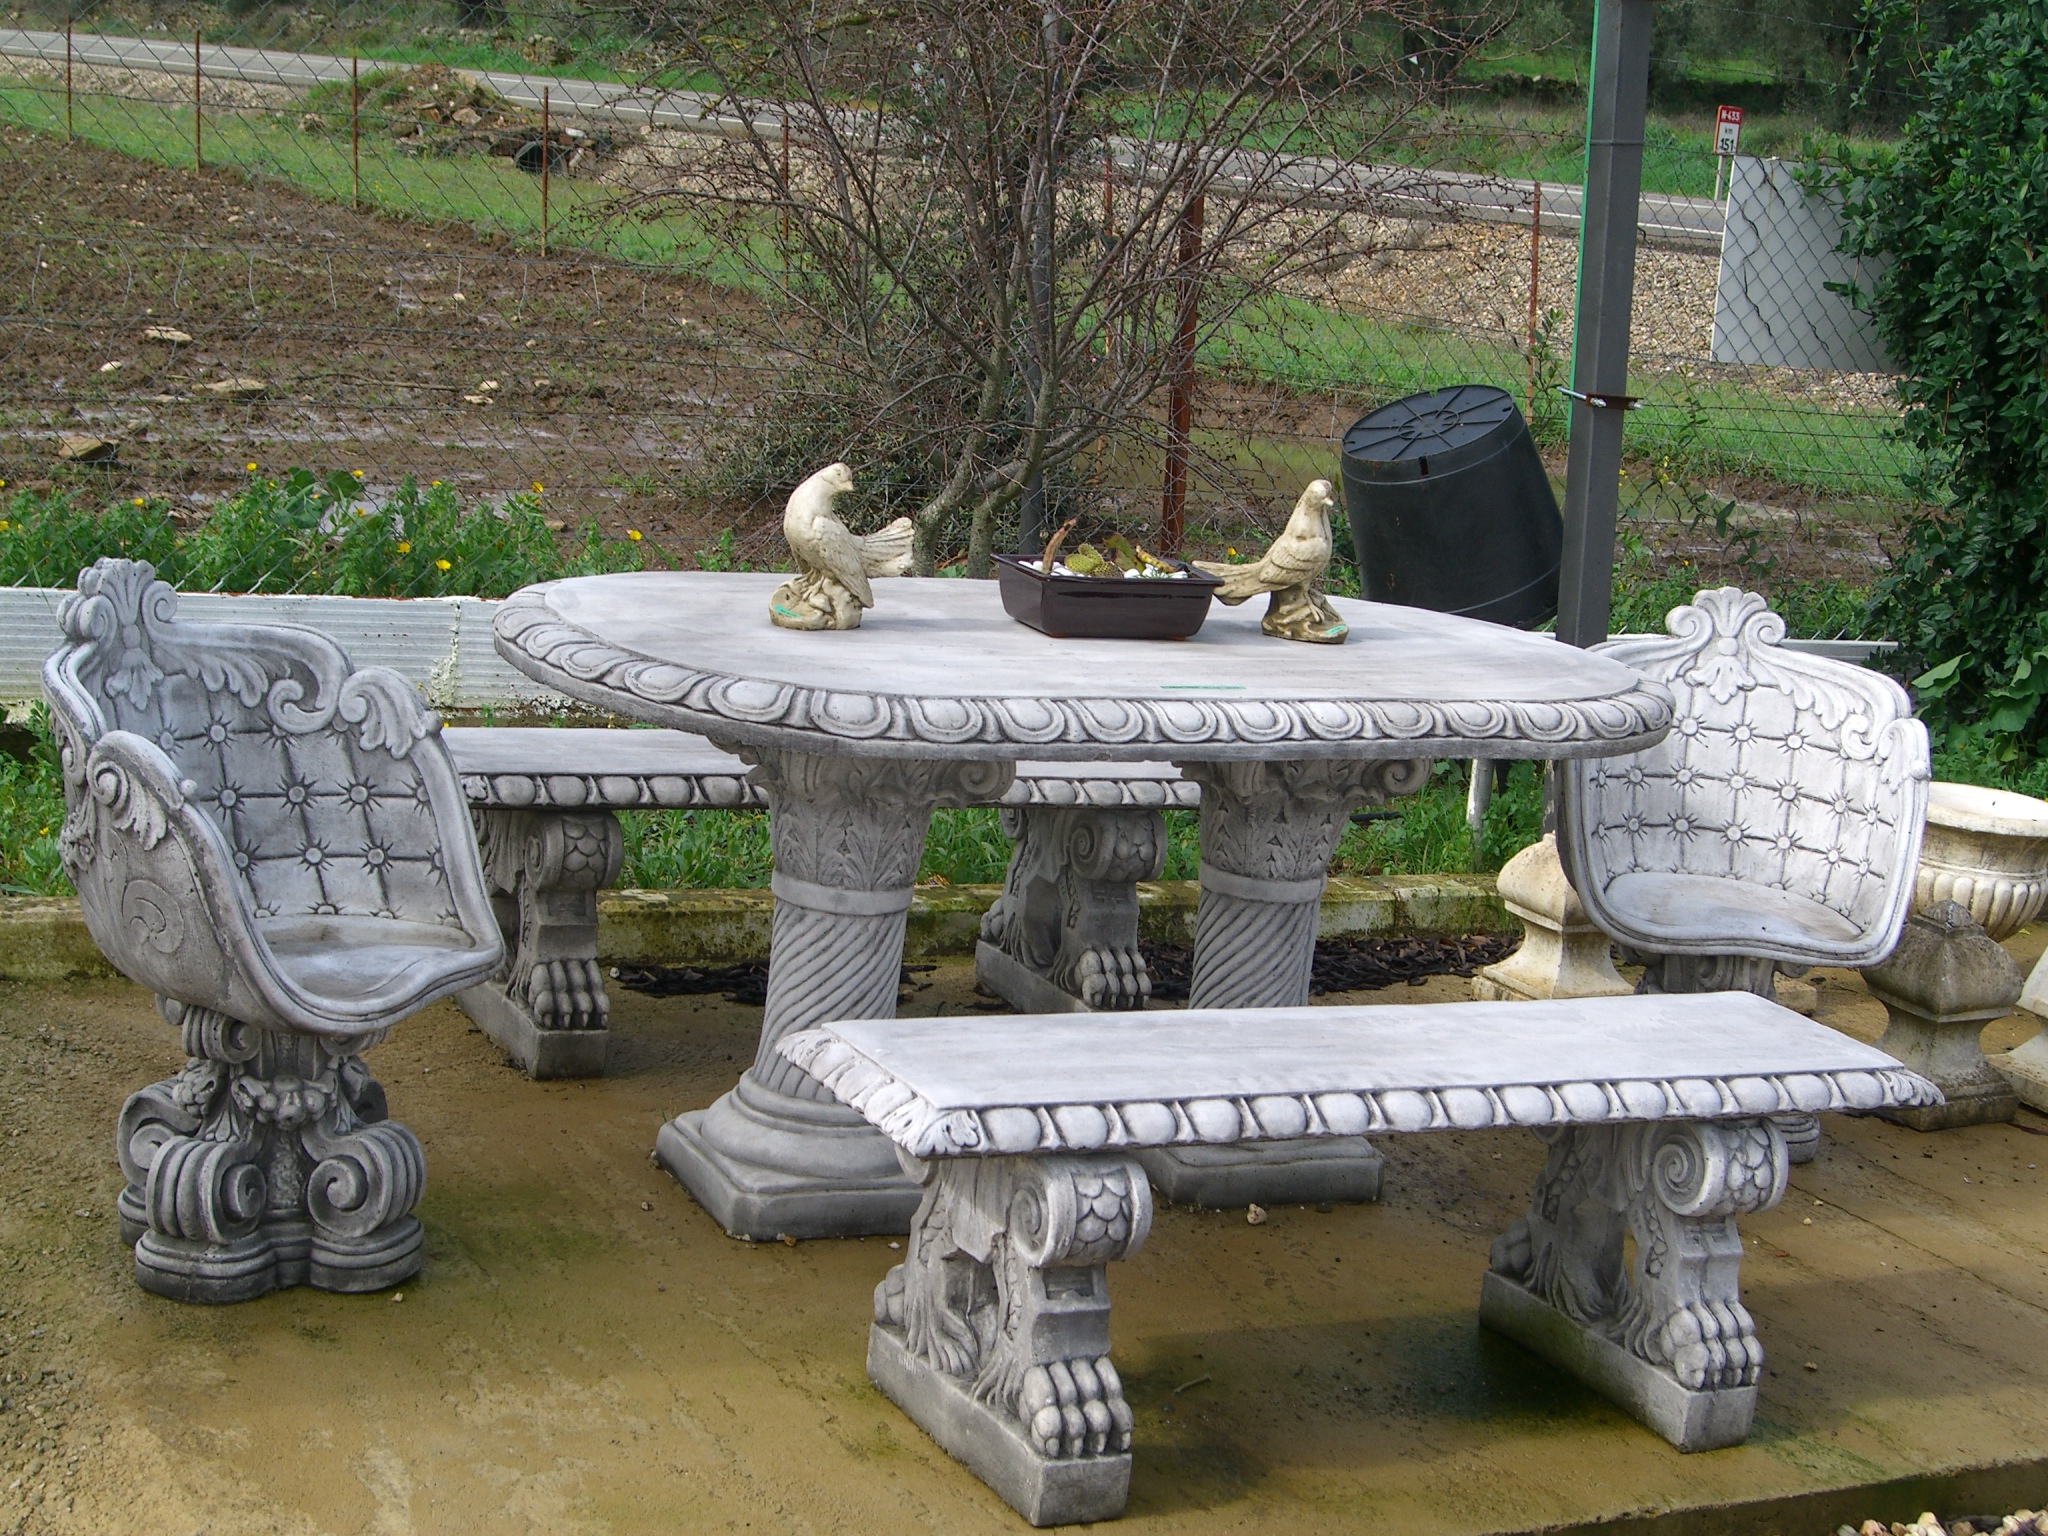 Art culos en piedra nova t cnica decoraci n for Articulos decoracion jardin